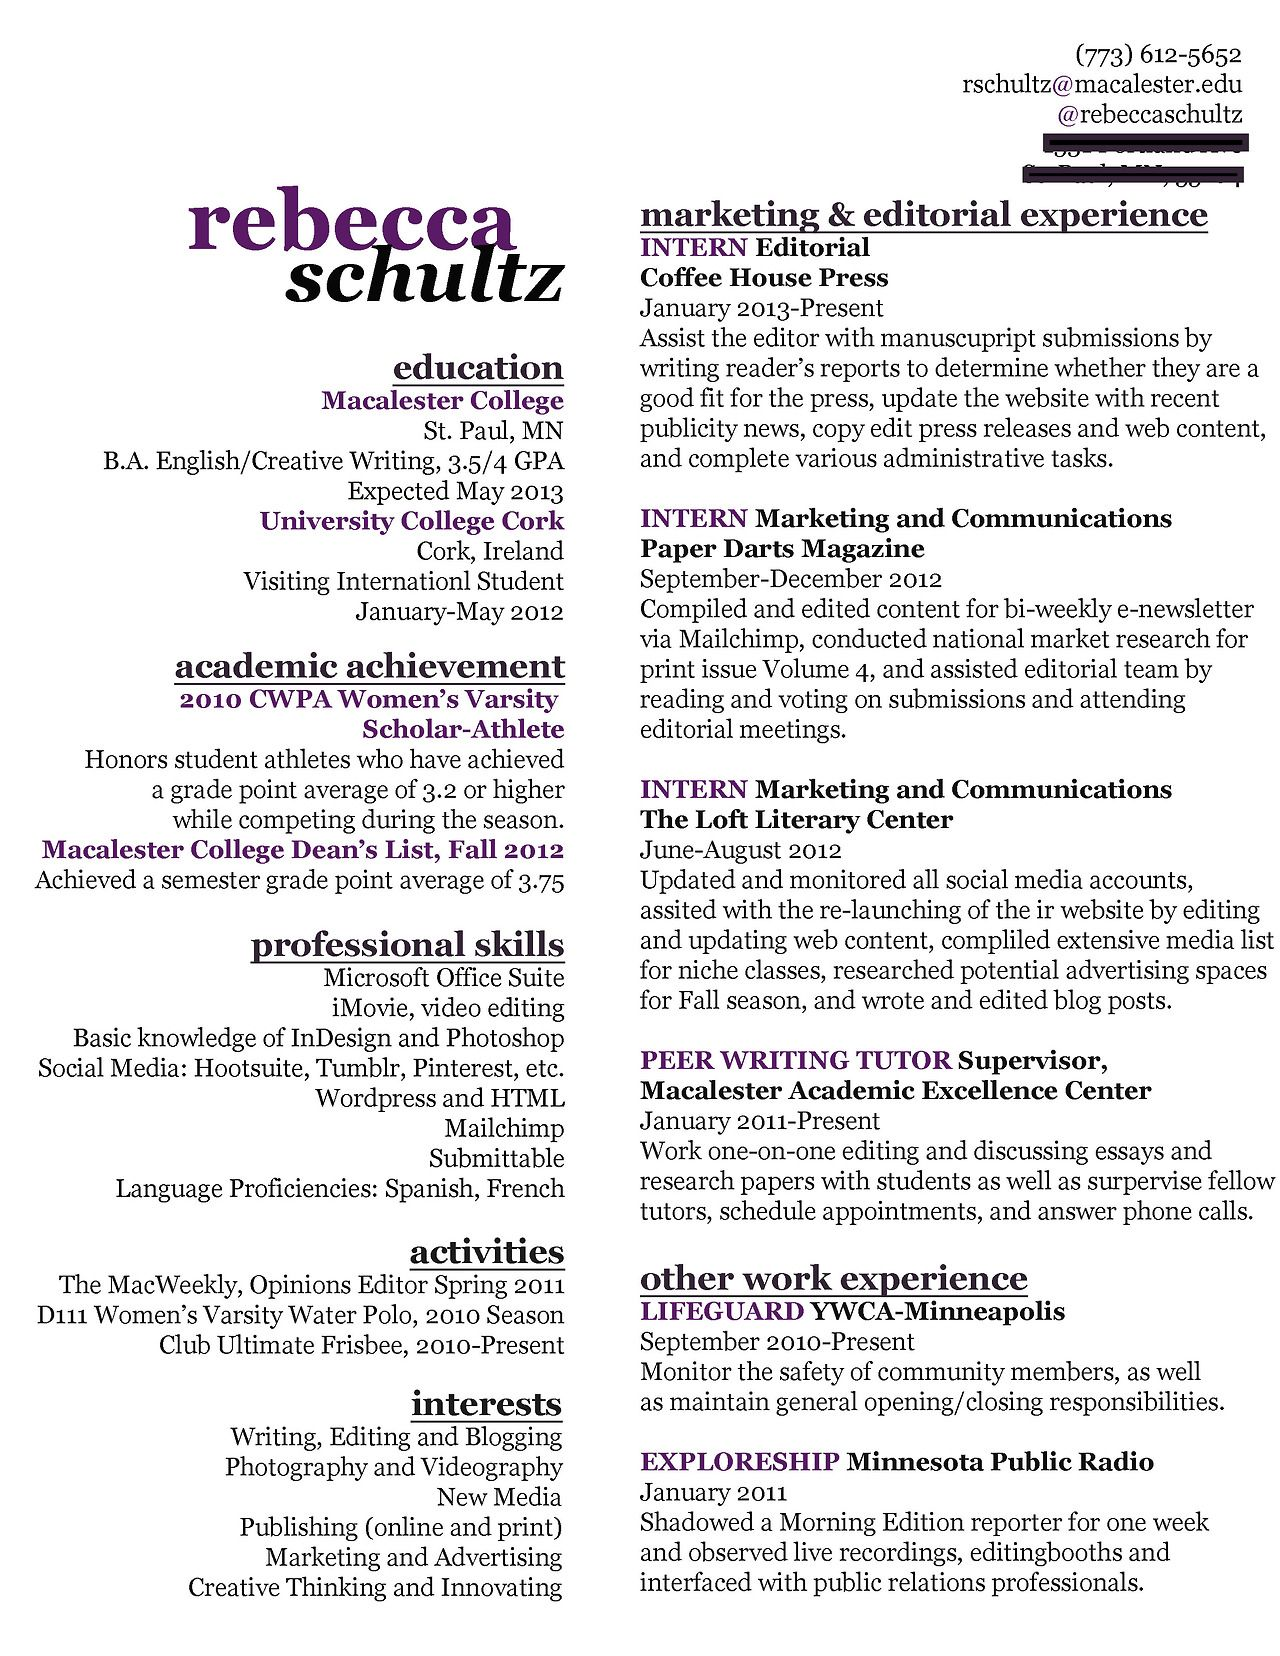 creative writer resumes template creative writer resumes